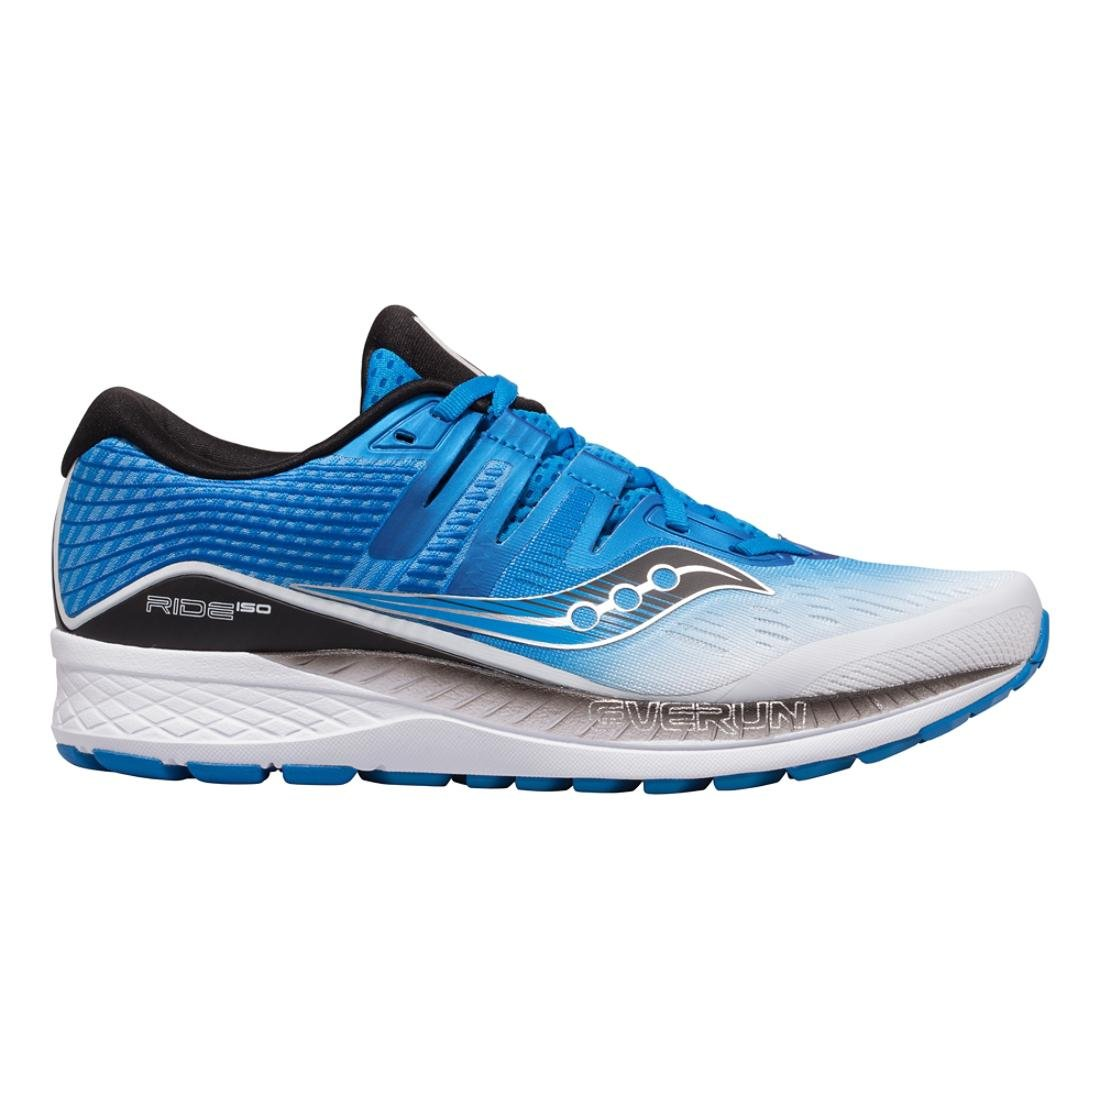 Saucony Men's Ride Iso Running Shoes B078PNJGYJ 10.5 EE US|White/Black/Blue